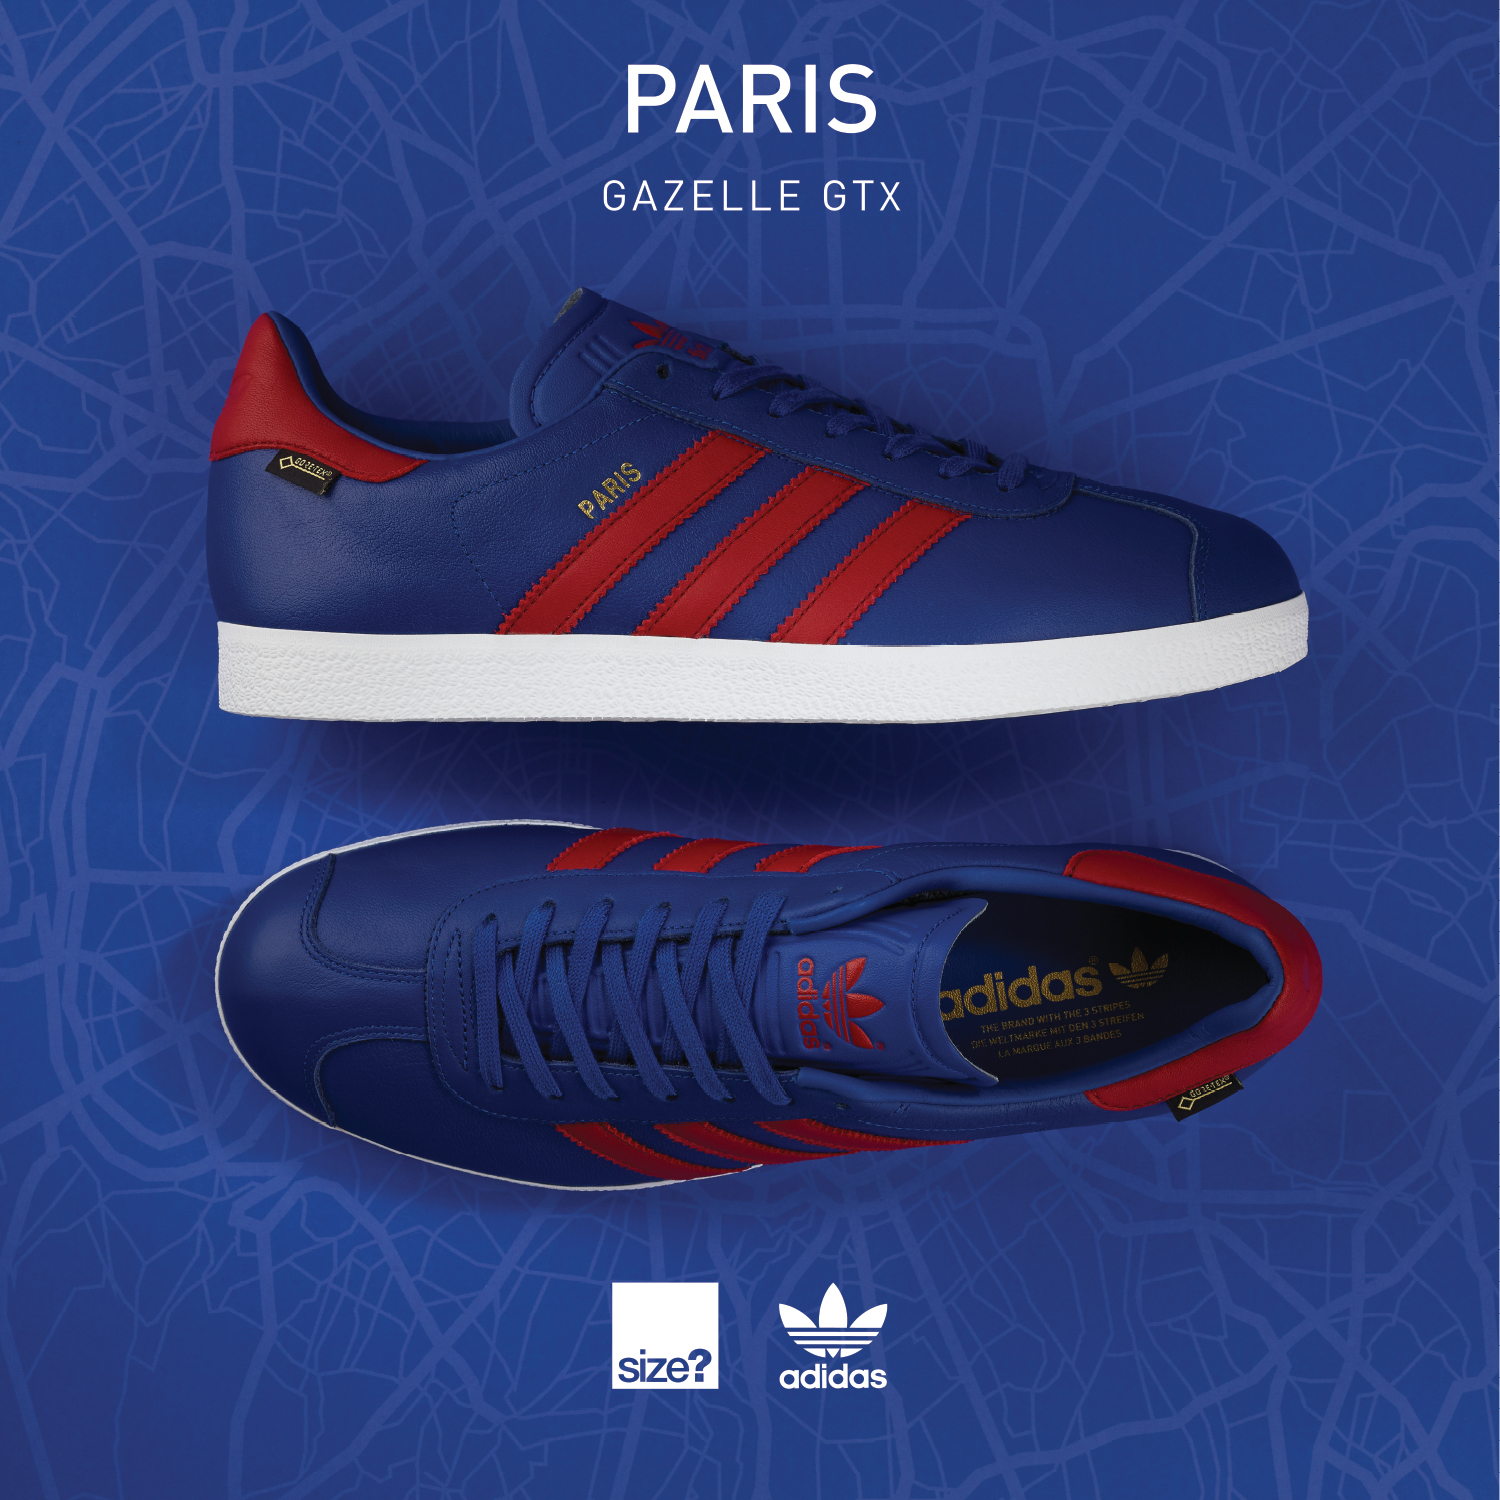 adidas original paris